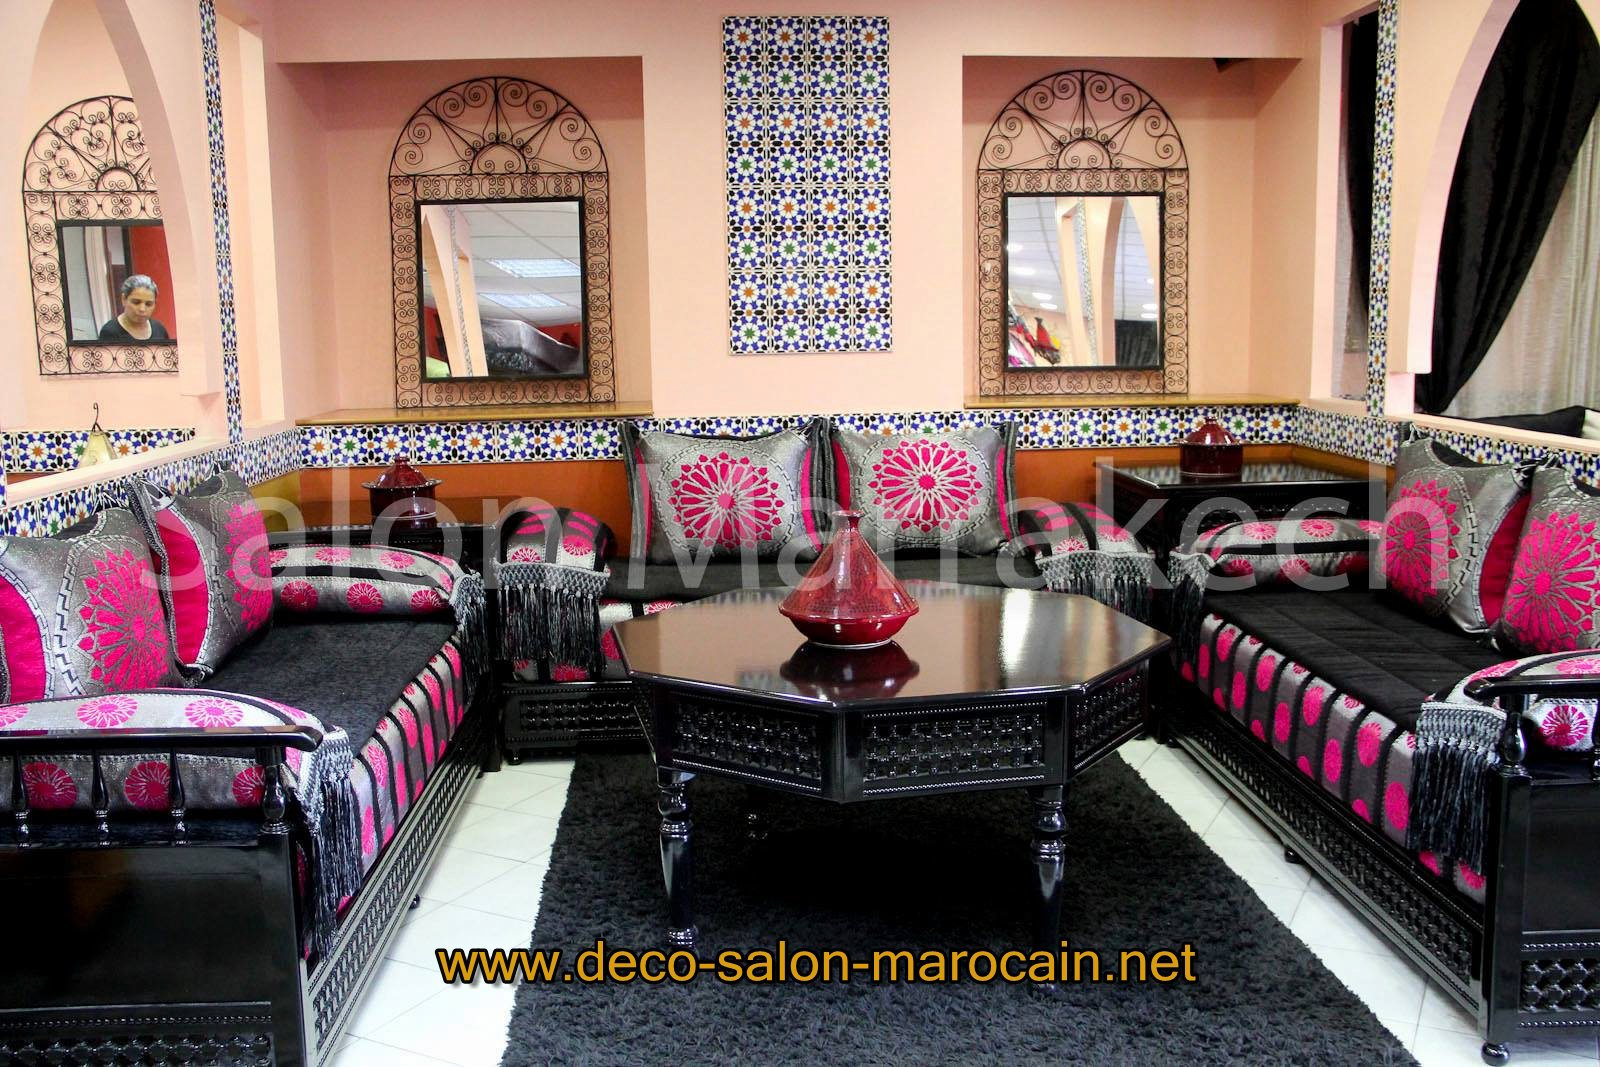 les salons marocain de 2015 holidays oo. Black Bedroom Furniture Sets. Home Design Ideas